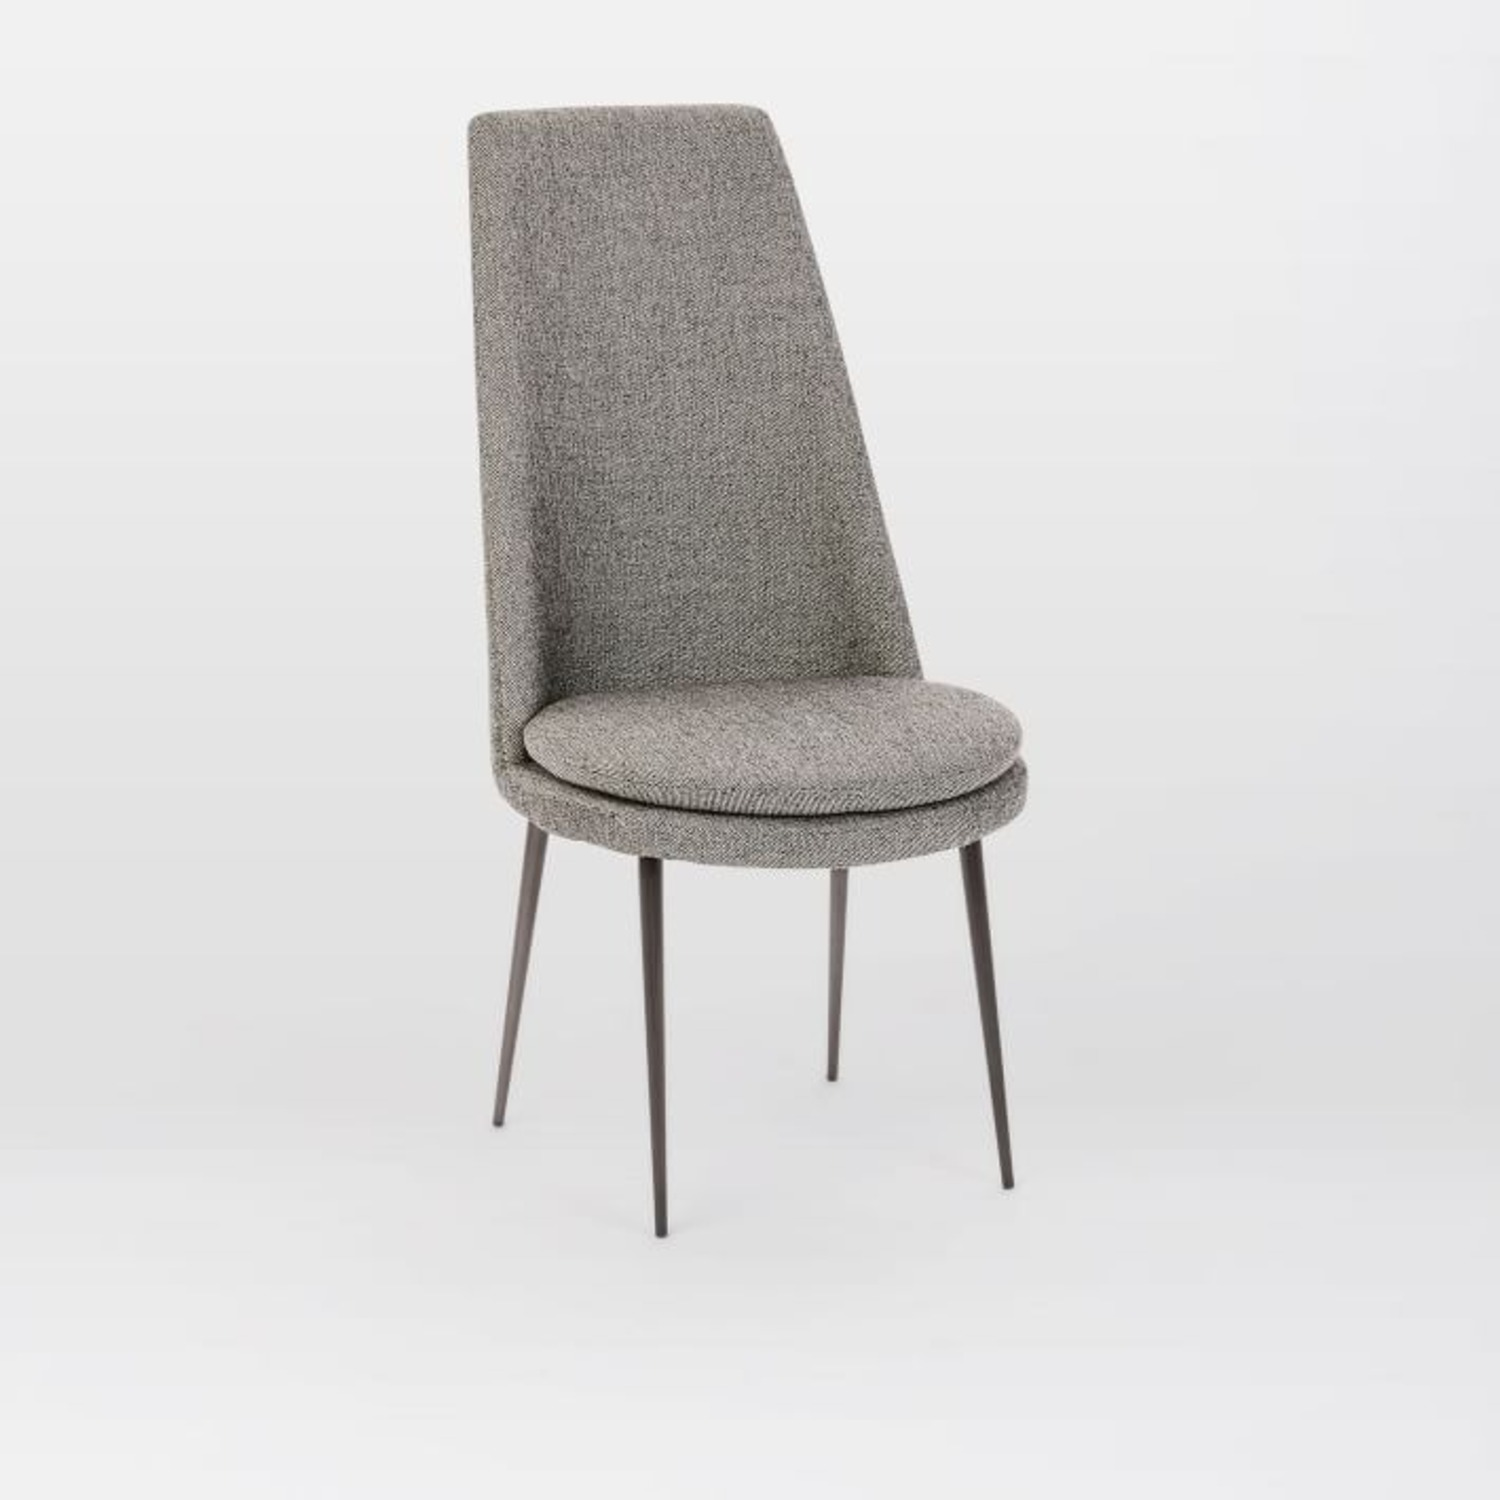 West Elm Finley High-Back Upholstered Dining Chair - image-3